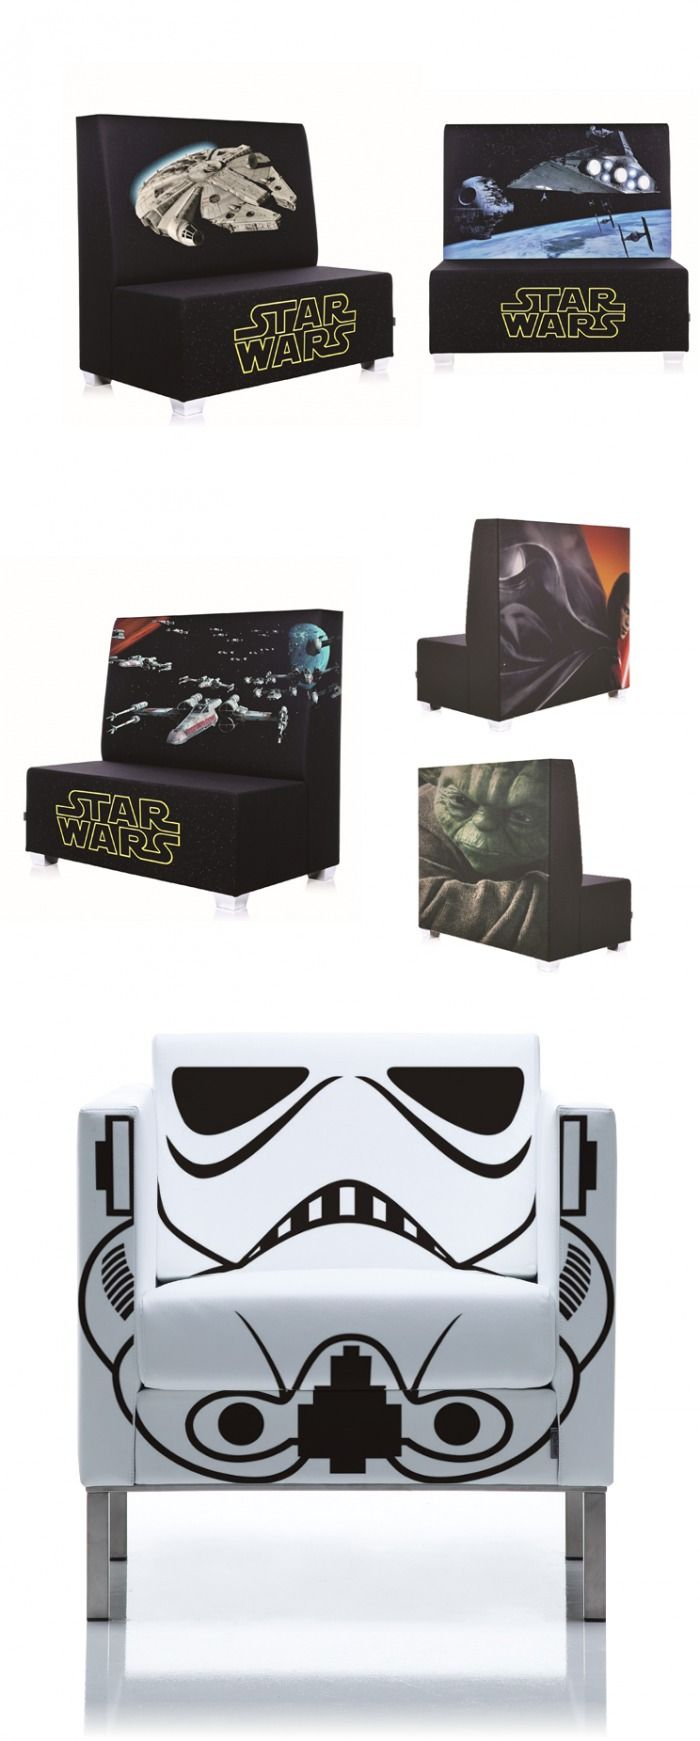 Star Wars printed Furniture in a Star Wars themed home-theater? How about YES